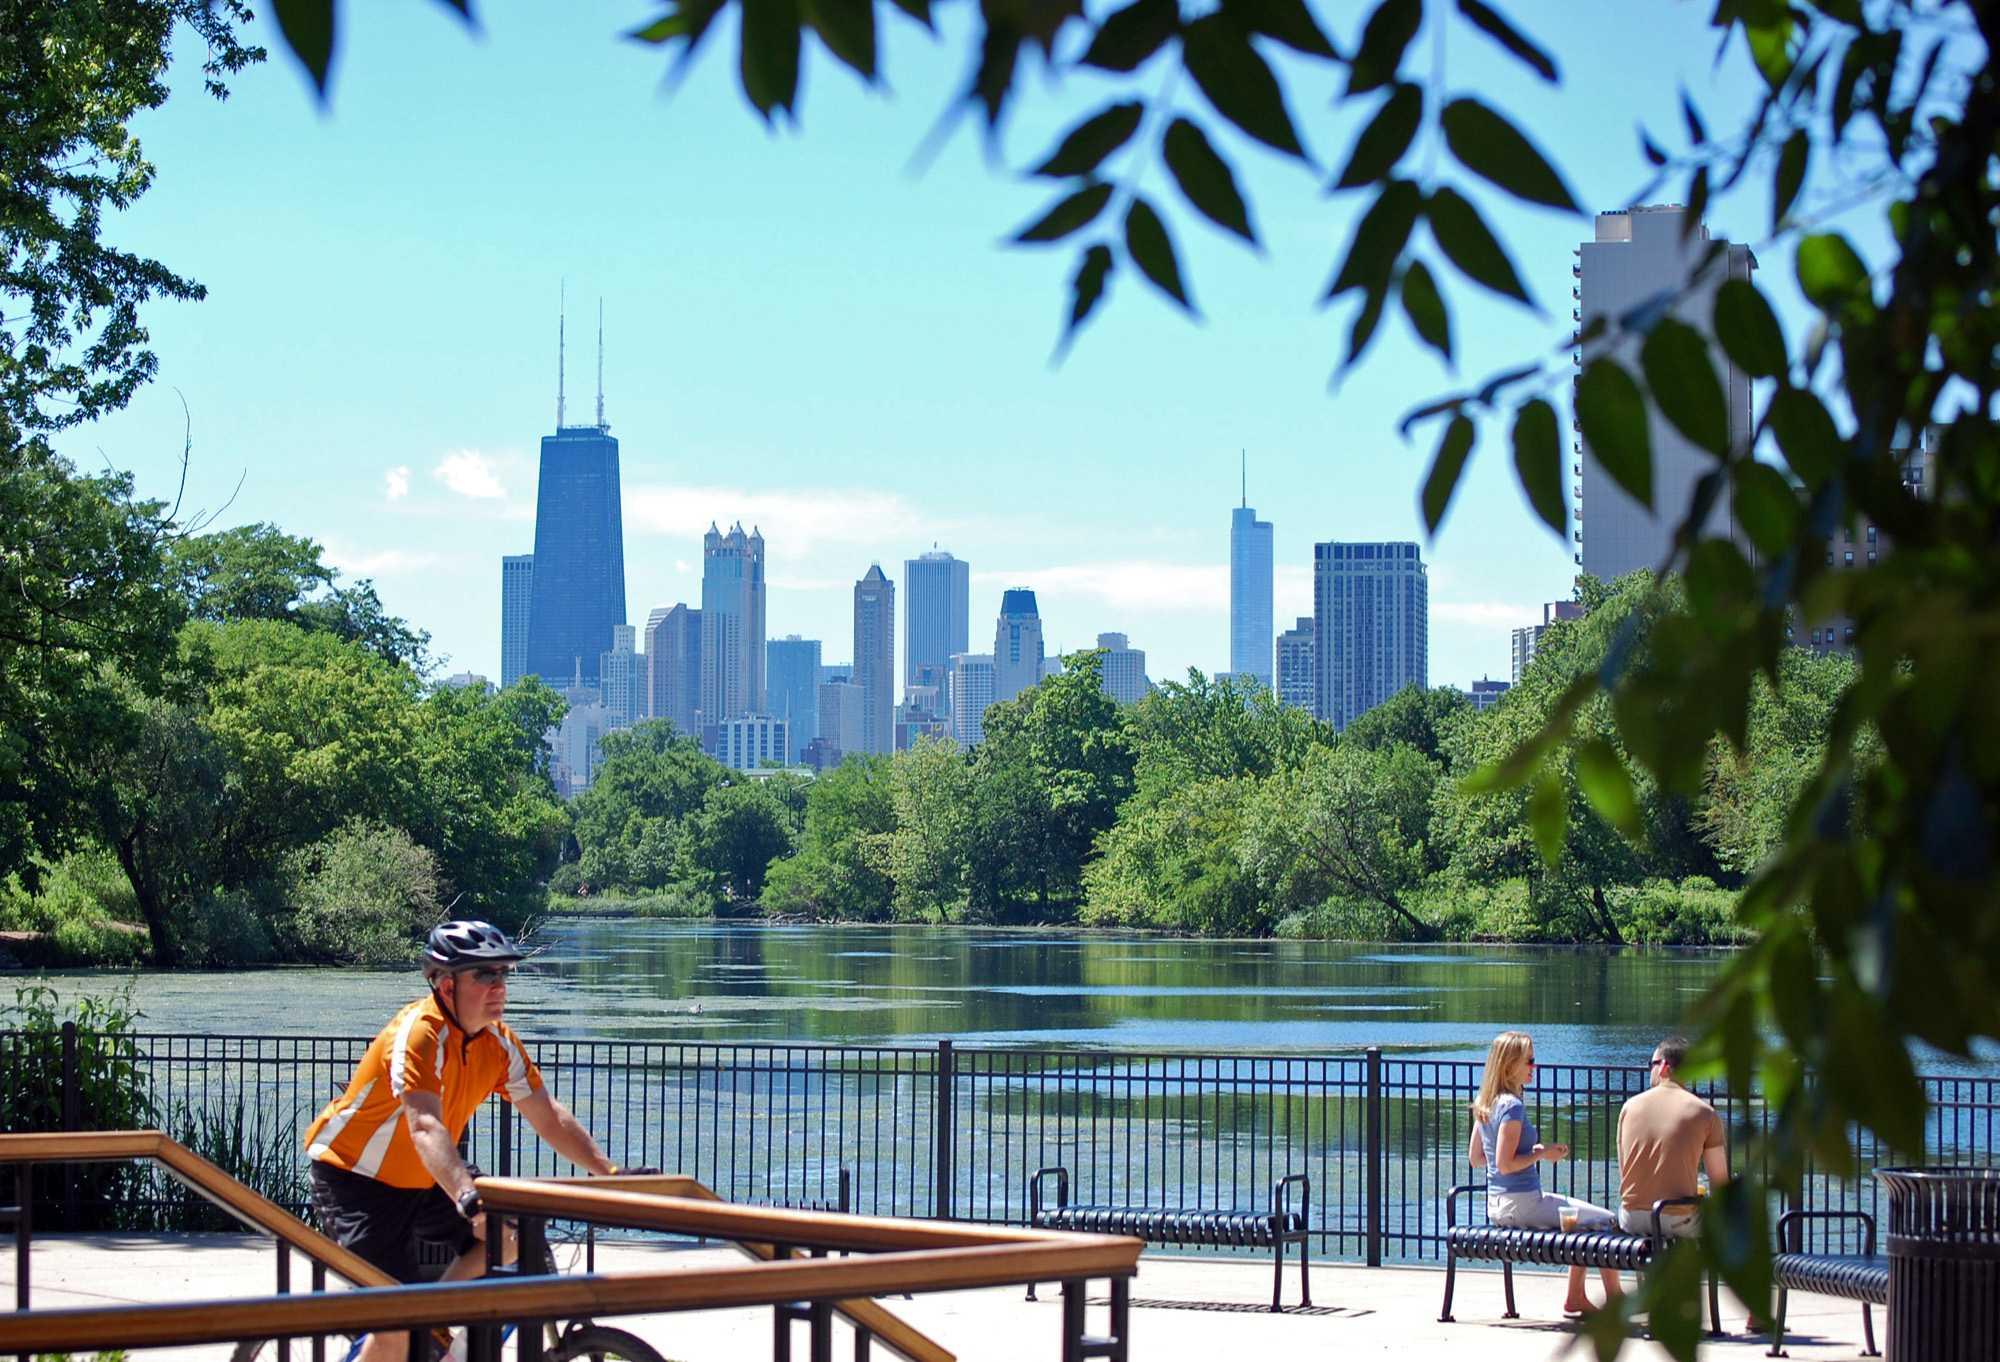 The skyline of Chicago is seen from the North Pond restaurant in Lincoln Park. The restaurant, as well as others in the city, contributed to Time Out scoring Chicago as the best city in the world. (Curt Brown | MCT)